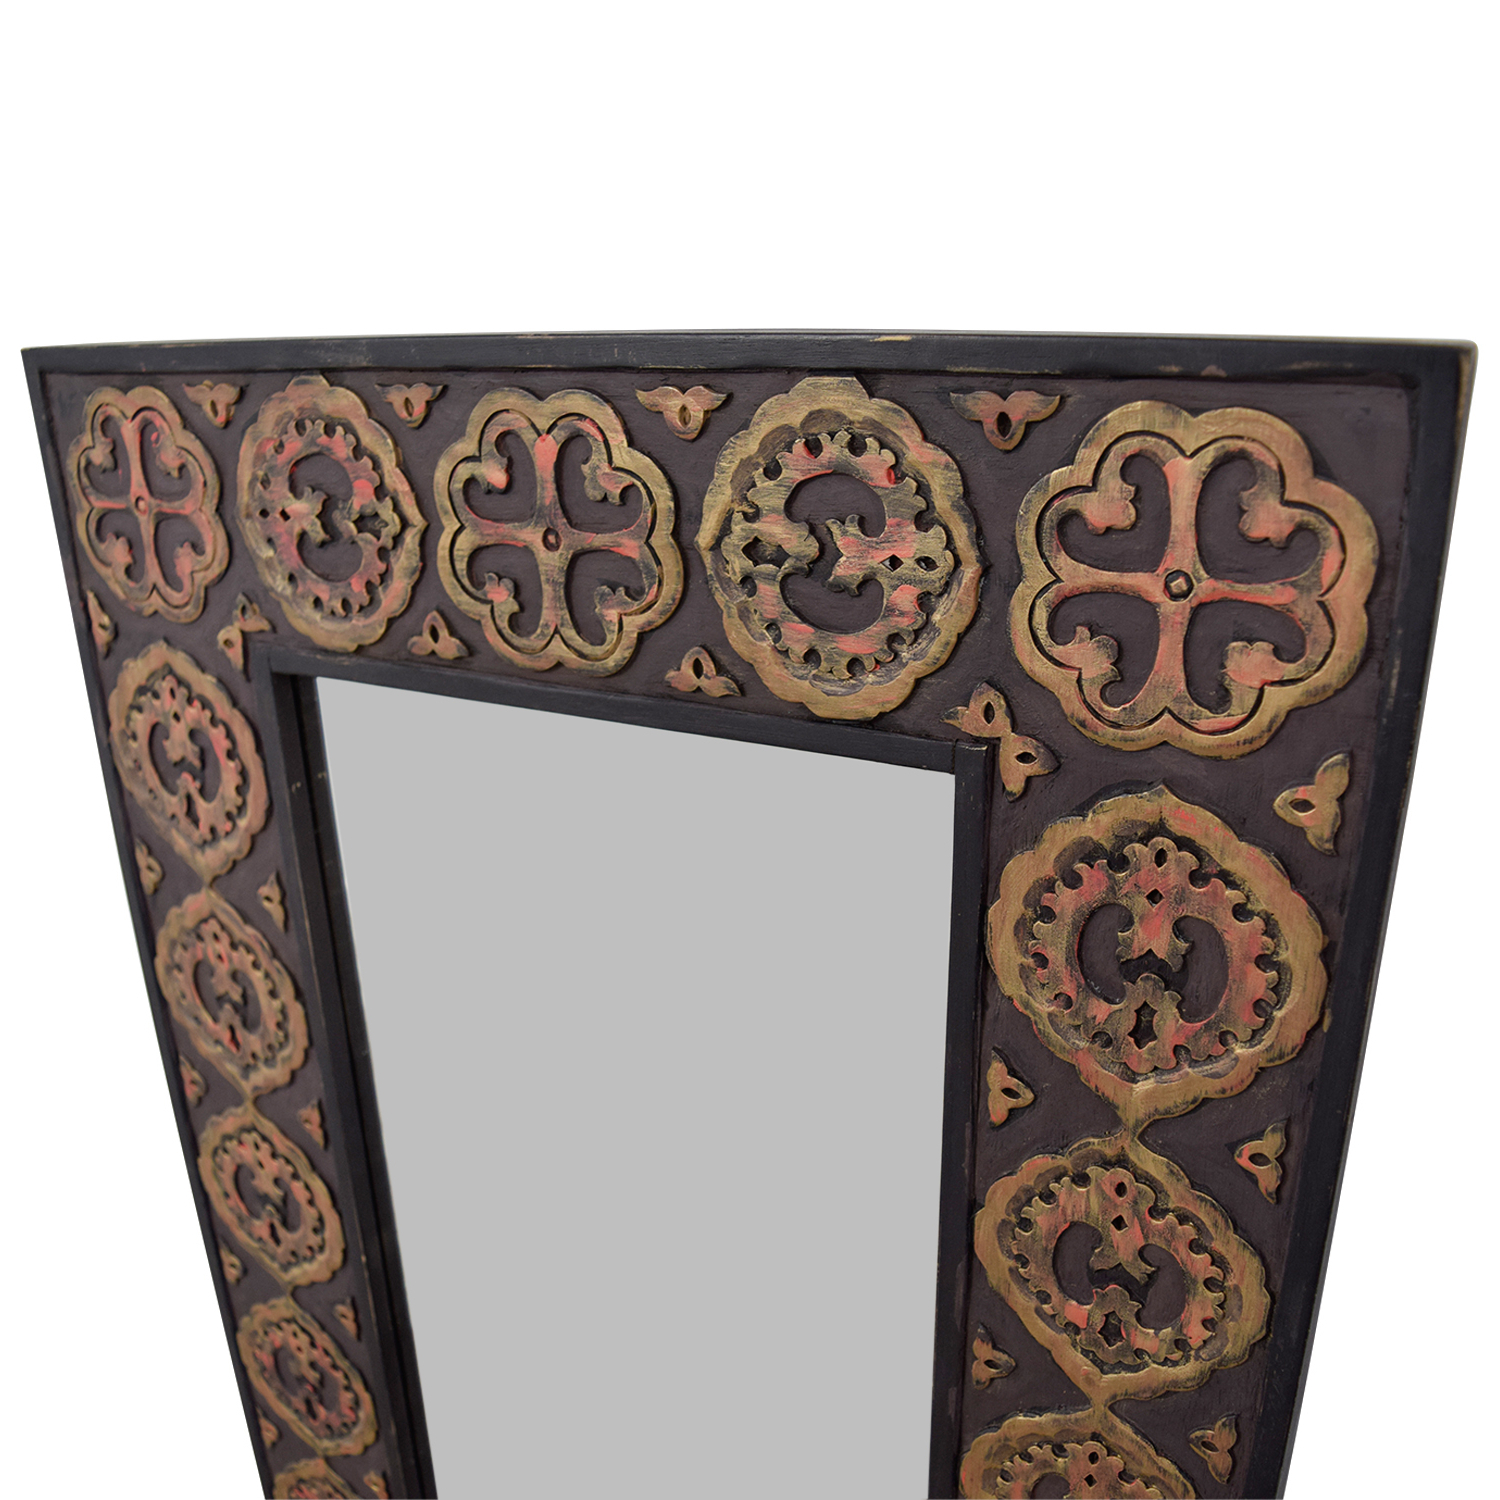 [%90% Off – Pier 1 Pier One Imports Mirror With Rustic Gold Emblemed Frame / Decor In Recent Pier One Wall Mirrors|Pier One Wall Mirrors Pertaining To Most Up To Date 90% Off – Pier 1 Pier One Imports Mirror With Rustic Gold Emblemed Frame / Decor|Best And Newest Pier One Wall Mirrors Inside 90% Off – Pier 1 Pier One Imports Mirror With Rustic Gold Emblemed Frame / Decor|2020 90% Off – Pier 1 Pier One Imports Mirror With Rustic Gold Emblemed Frame / Decor Pertaining To Pier One Wall Mirrors%] (View 7 of 20)